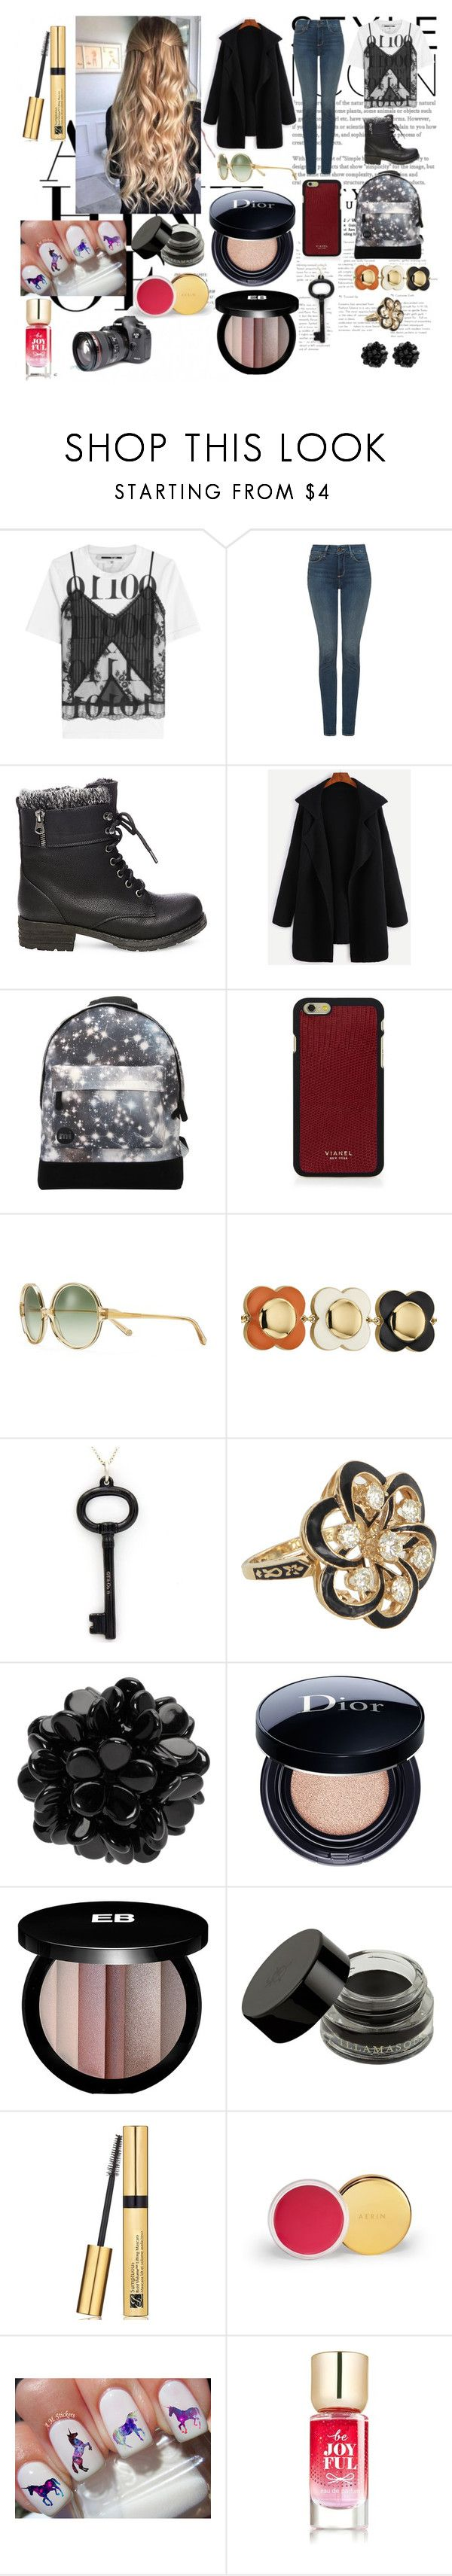 """""""Benefit."""" by it-srabina ❤ liked on Polyvore featuring McQ by Alexander McQueen, NYDJ, Steve Madden, Mi-Pac, Vianel, Tory Burch, Orla Kiely, Tiffany & Co., Vintage and Simone Rocha"""